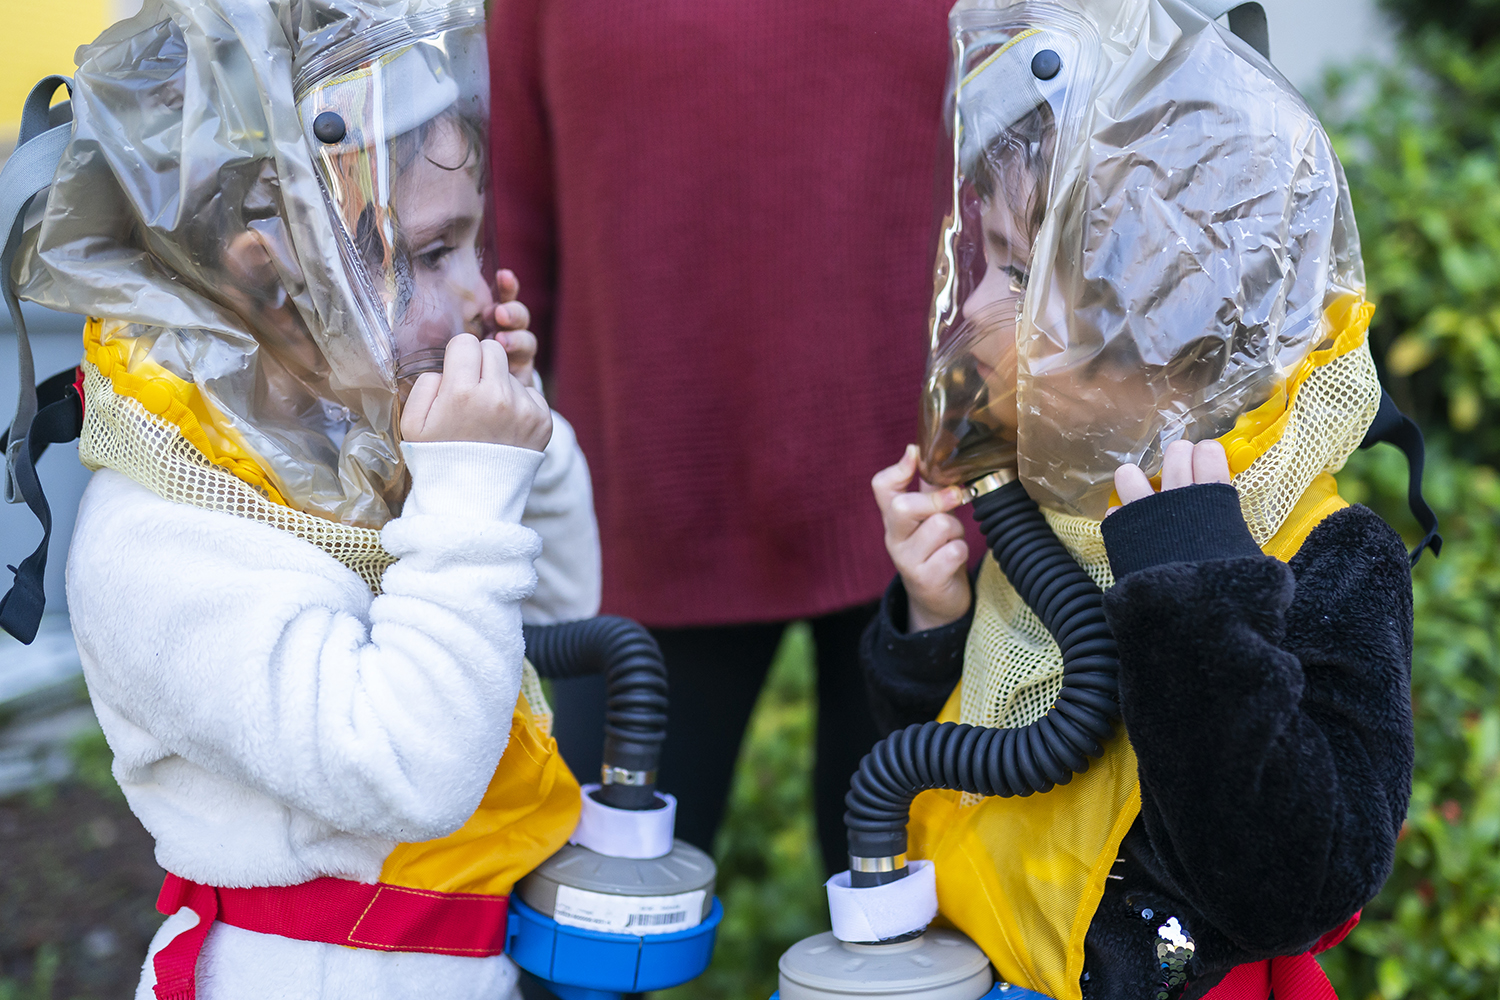 "Four-year-old twins Buddy Mae Walker, left, and Eleanor Walker examine each other through child respirators provided by the nonprofit Team Raccoon PDX in Portland, Oregon, on Oct. 6. Their mother, Jessica Walker, told the twins that their grandparents sent them ""space suits"" to keep them safe. The family sought out the respirators after police used tear gas near their residential street. Nathan Howard/Getty Images"